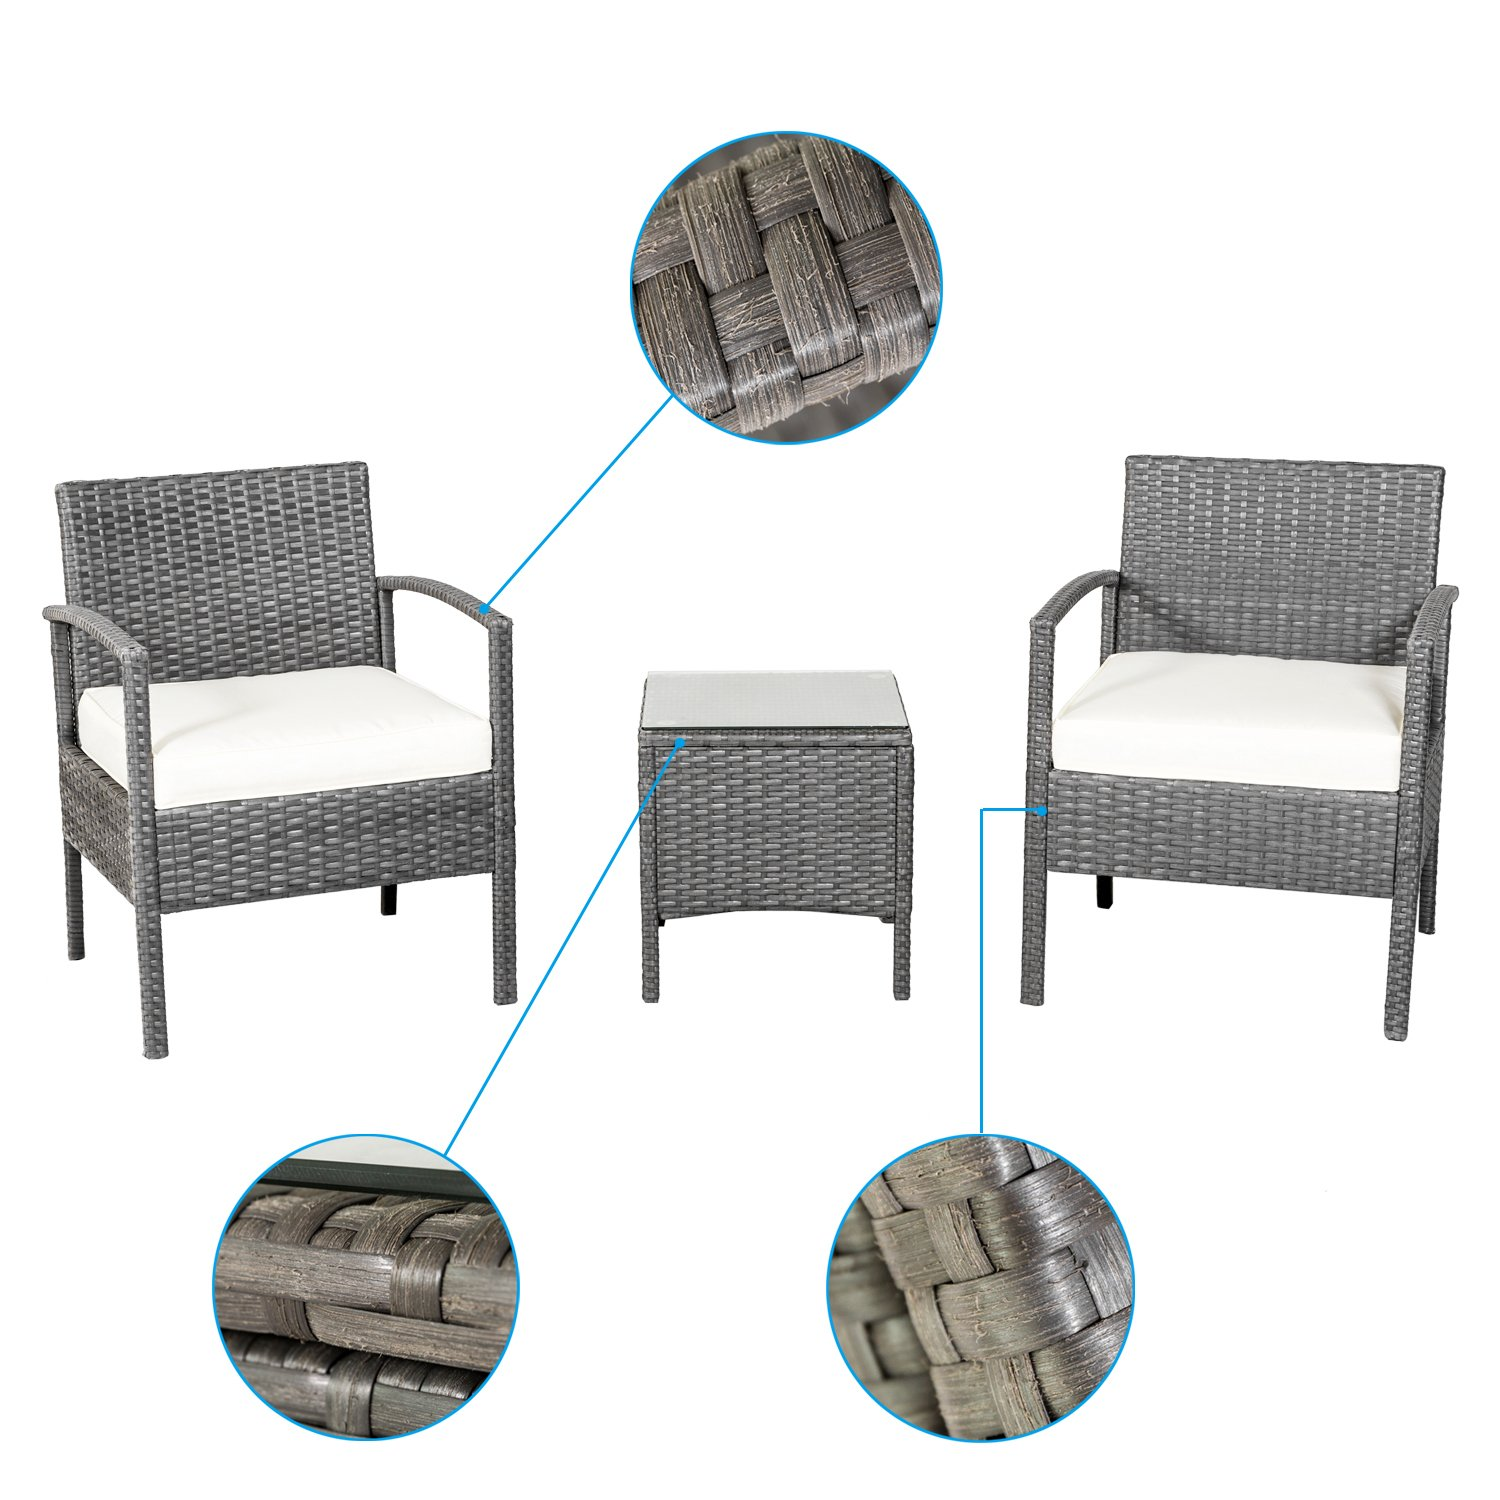 Remarkable Qjr 3 Piece Patio Furniture Set Rattan Table And Chairs Set Two Chairs With Glass Coffee Table Beutiful Home Inspiration Aditmahrainfo